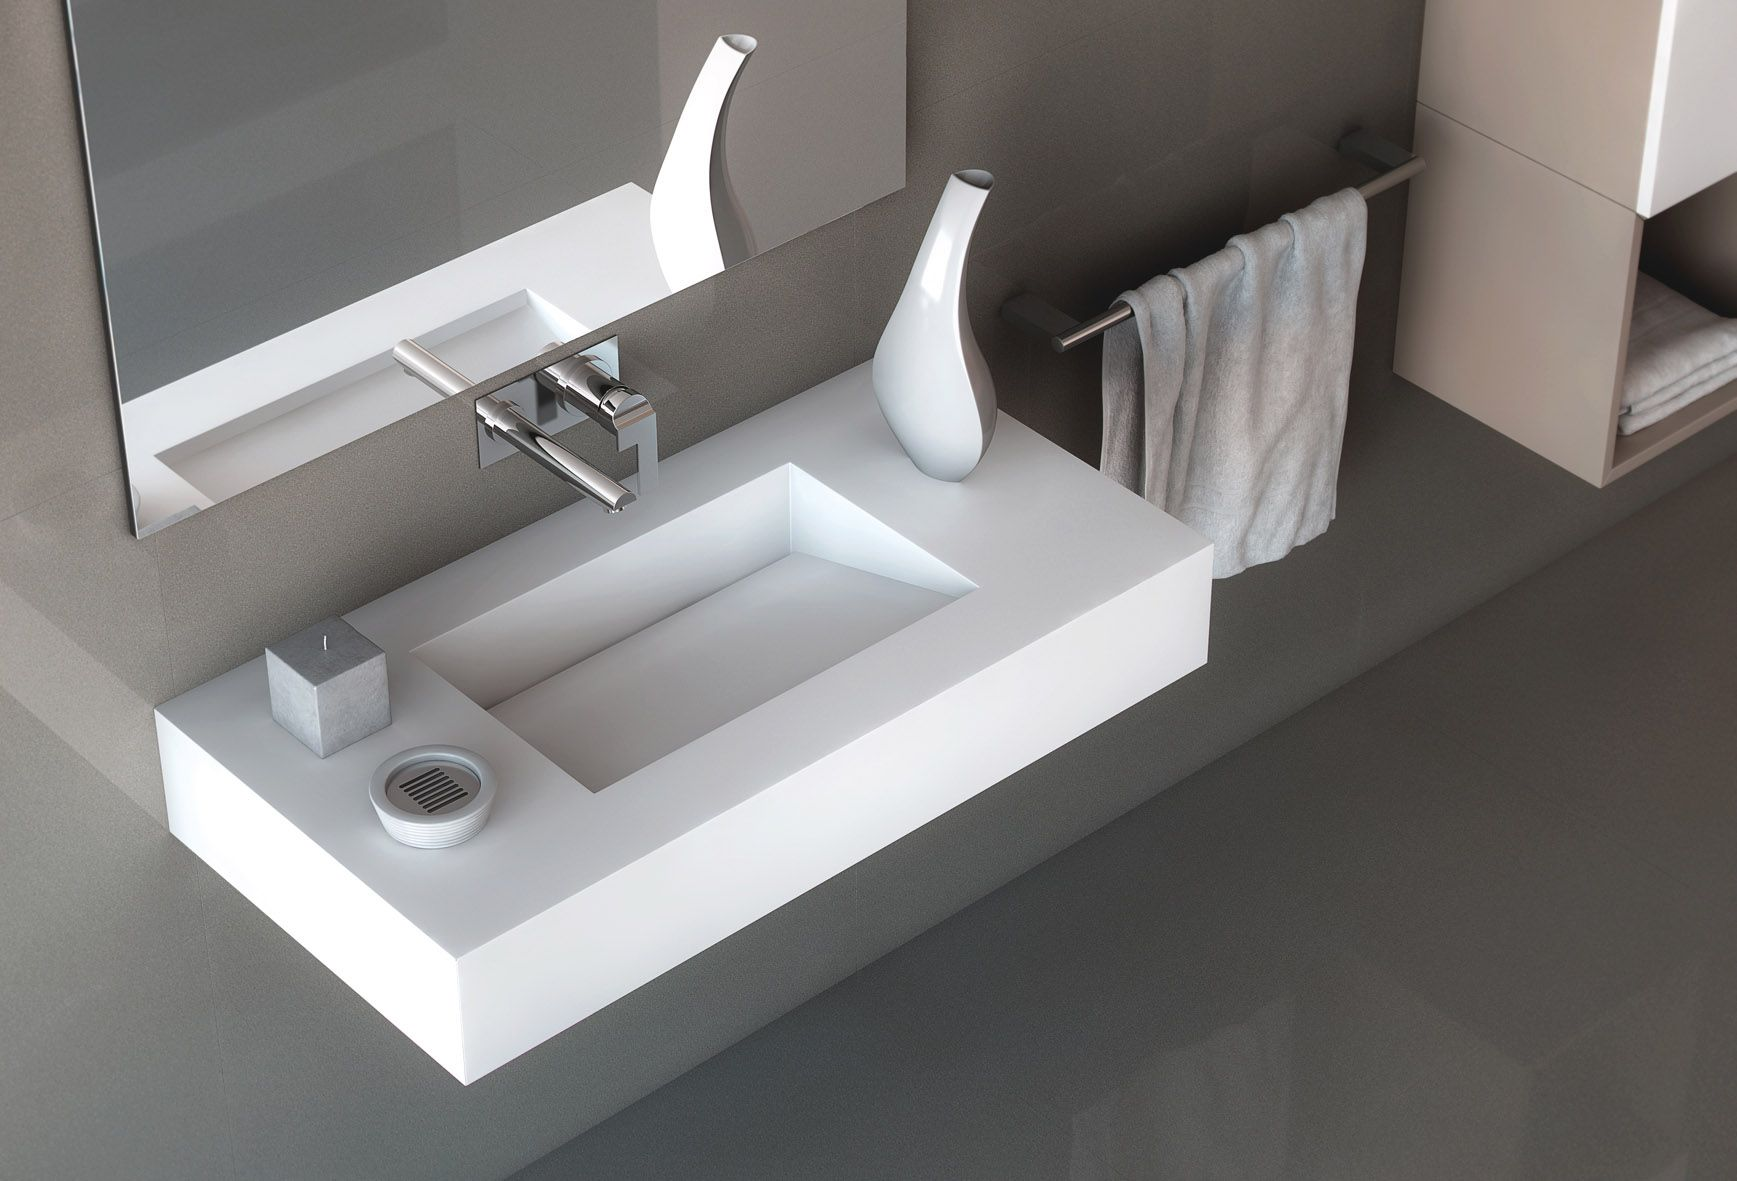 Silestone sink from the bath collection of cosentino for Silestone sink